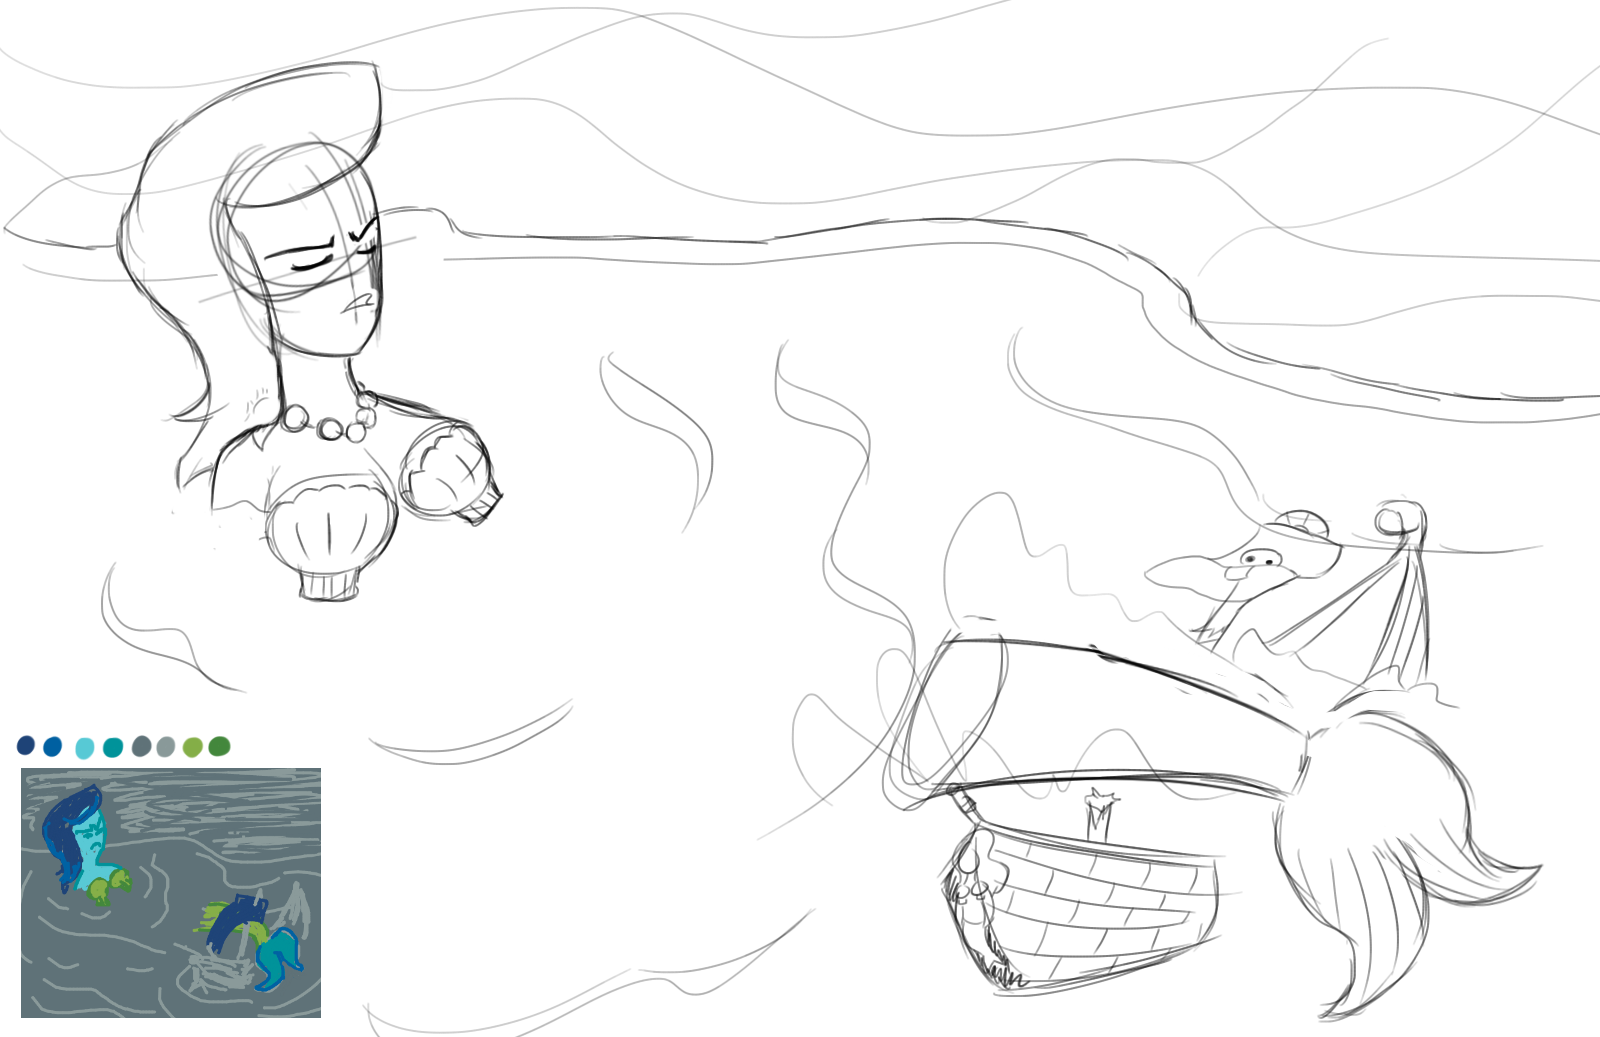 Sketch: Mermaid Sinks A Pirate Ship